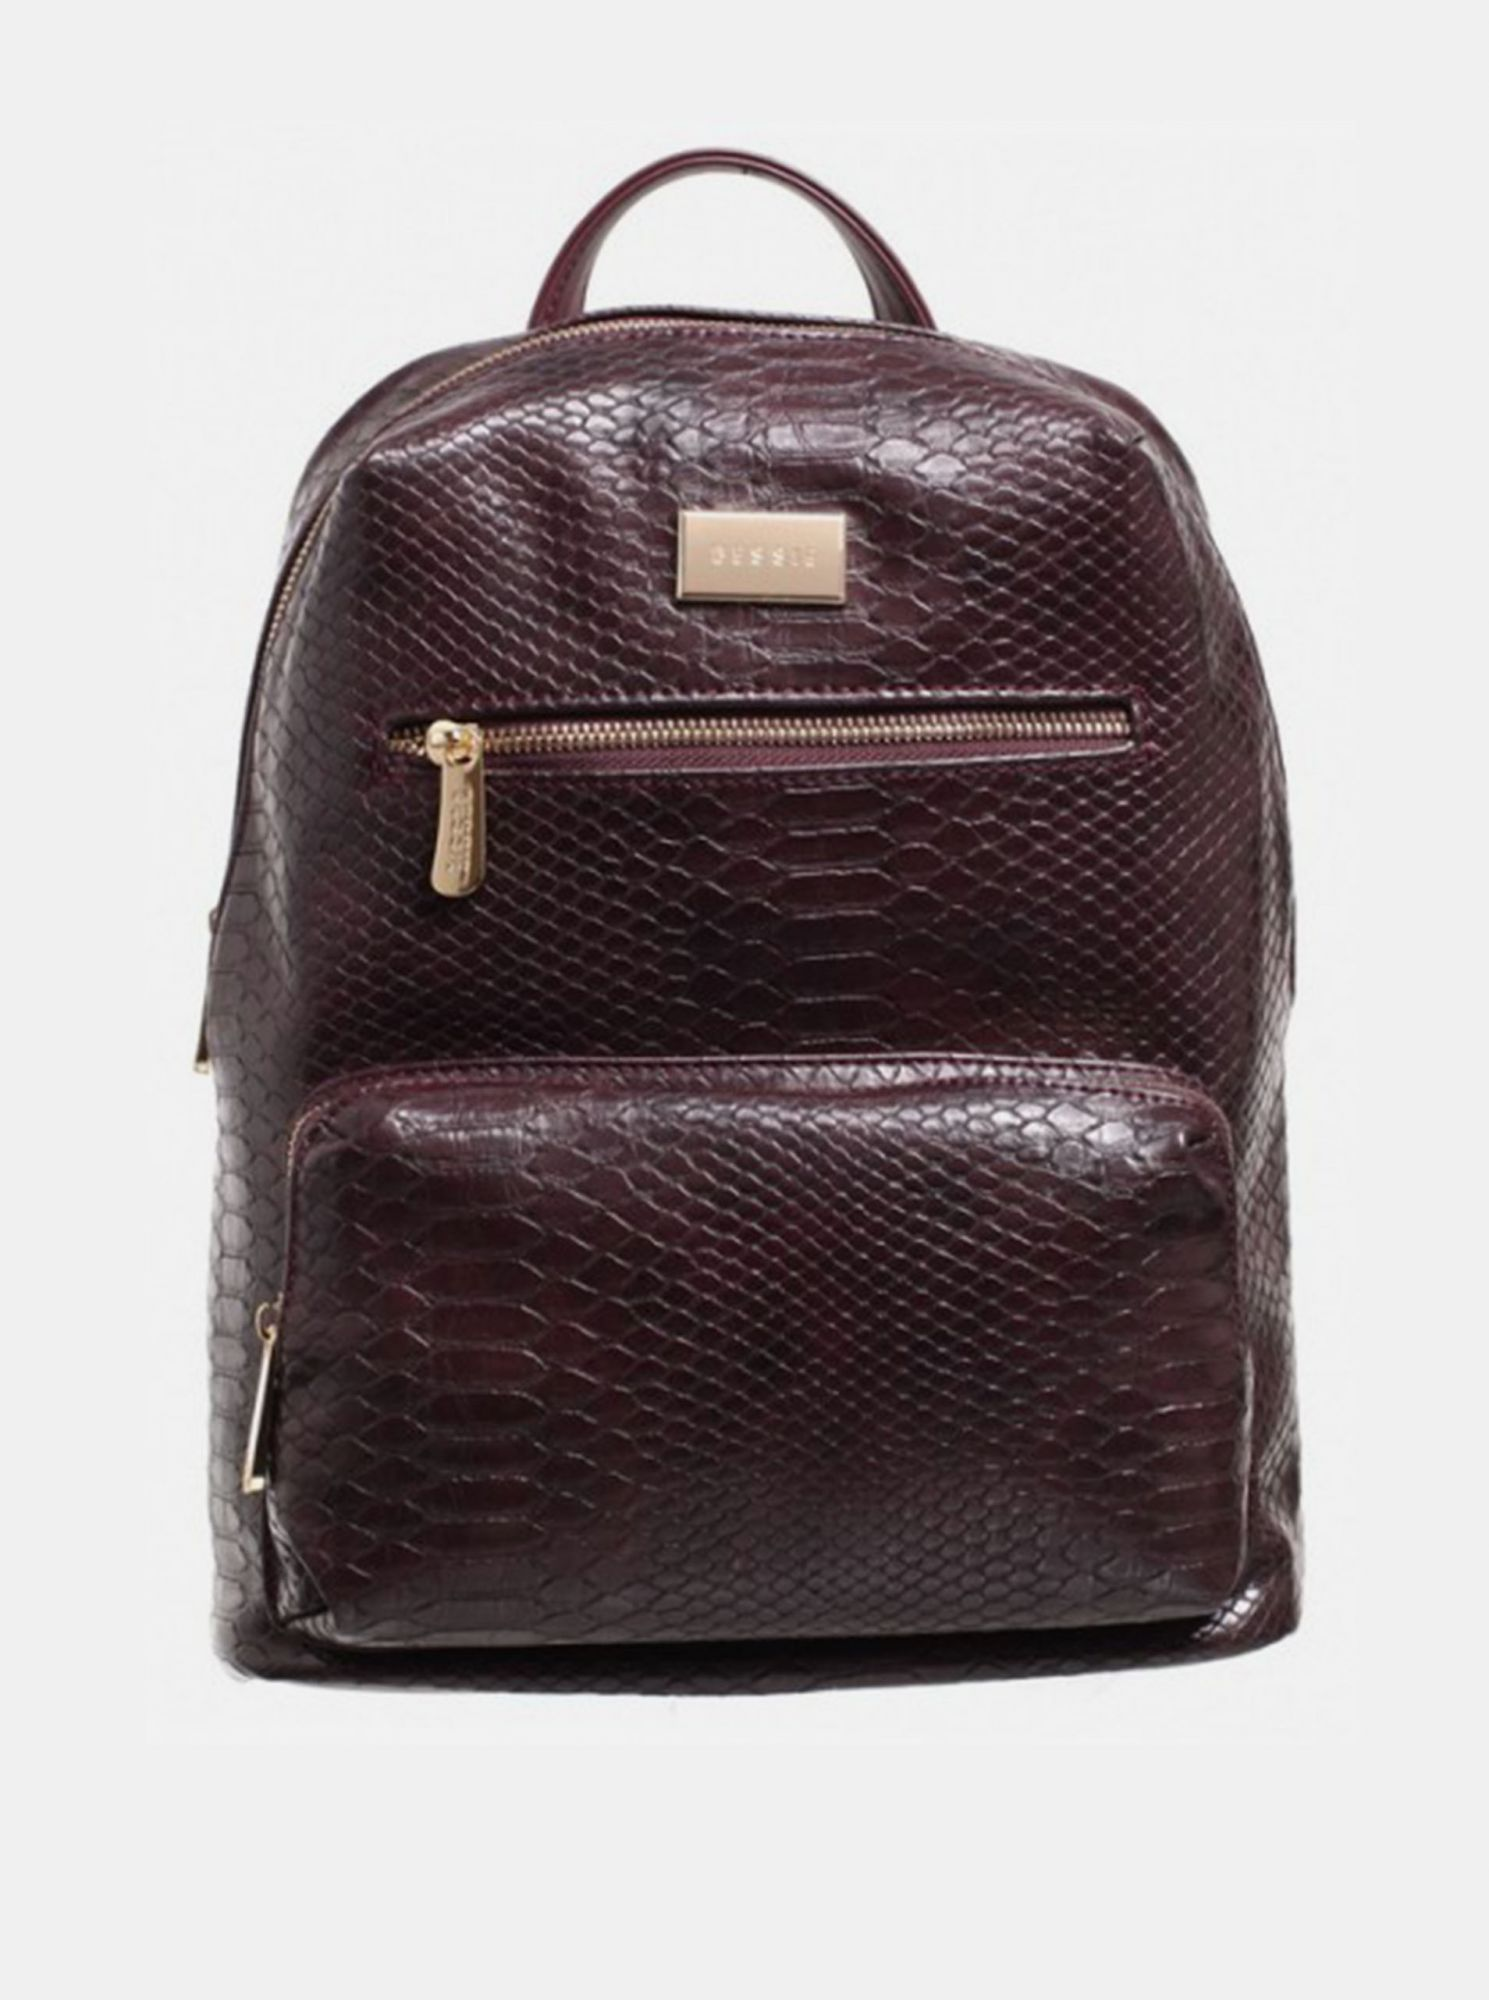 Burgundy backpack with crocodile pattern Bessie London